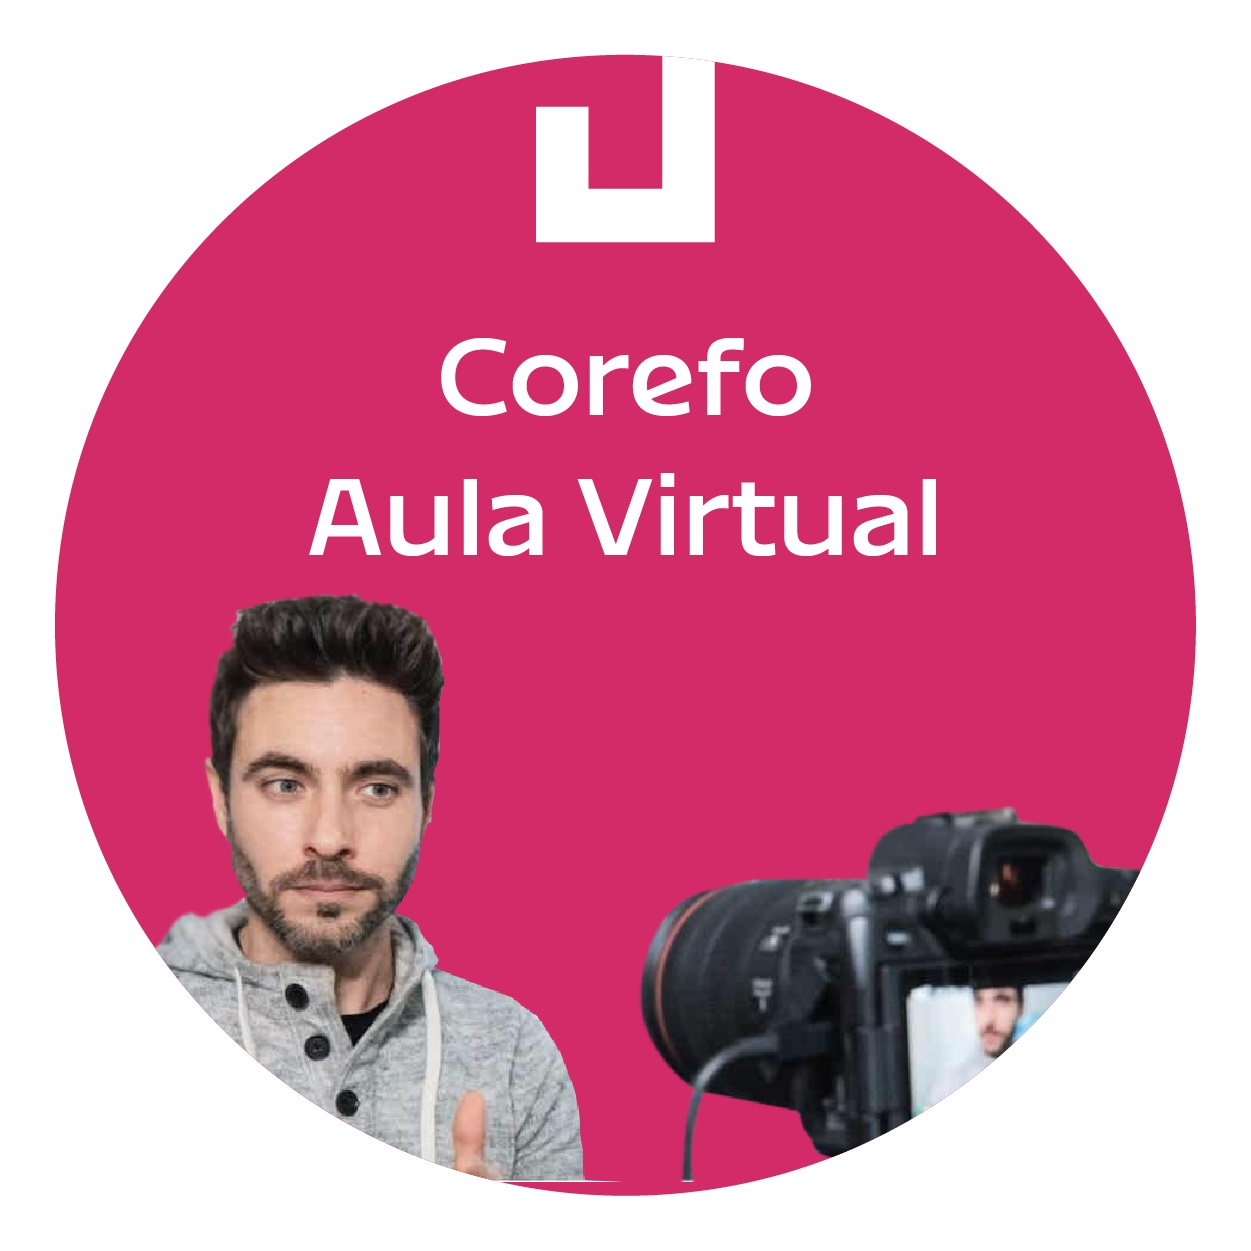 COREFO aula virtual